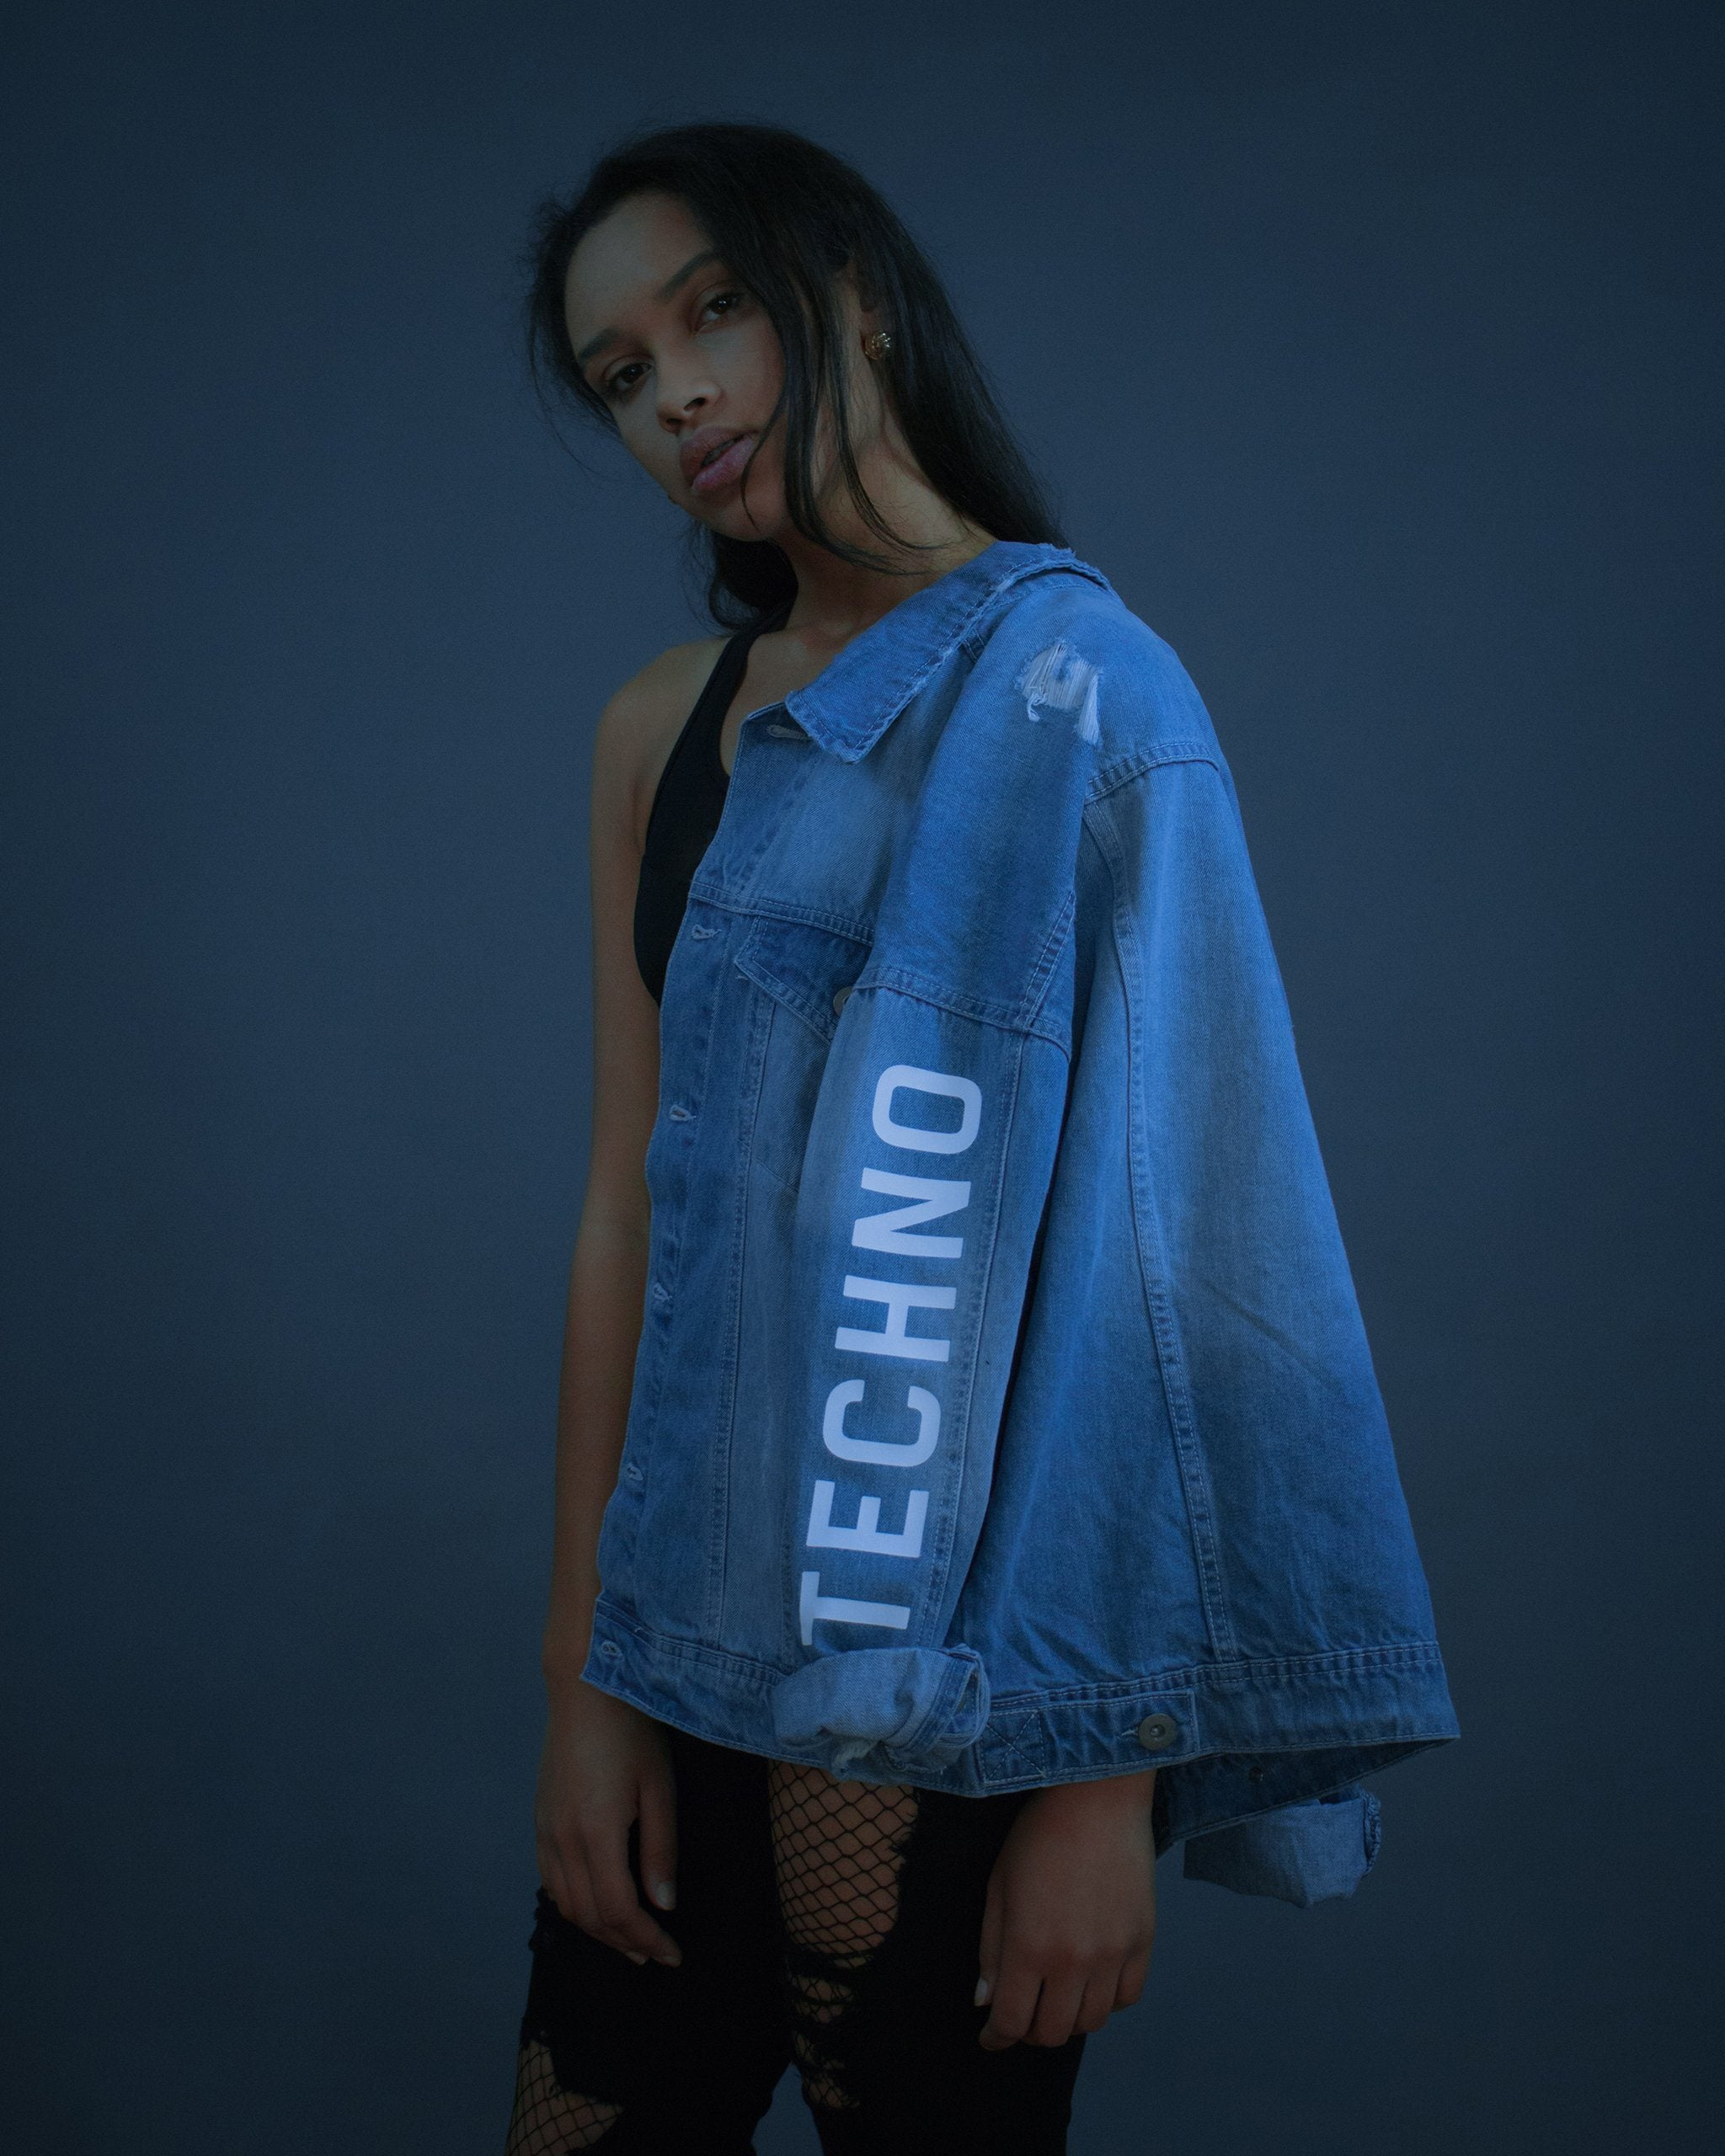 Denim jacket with techno motif